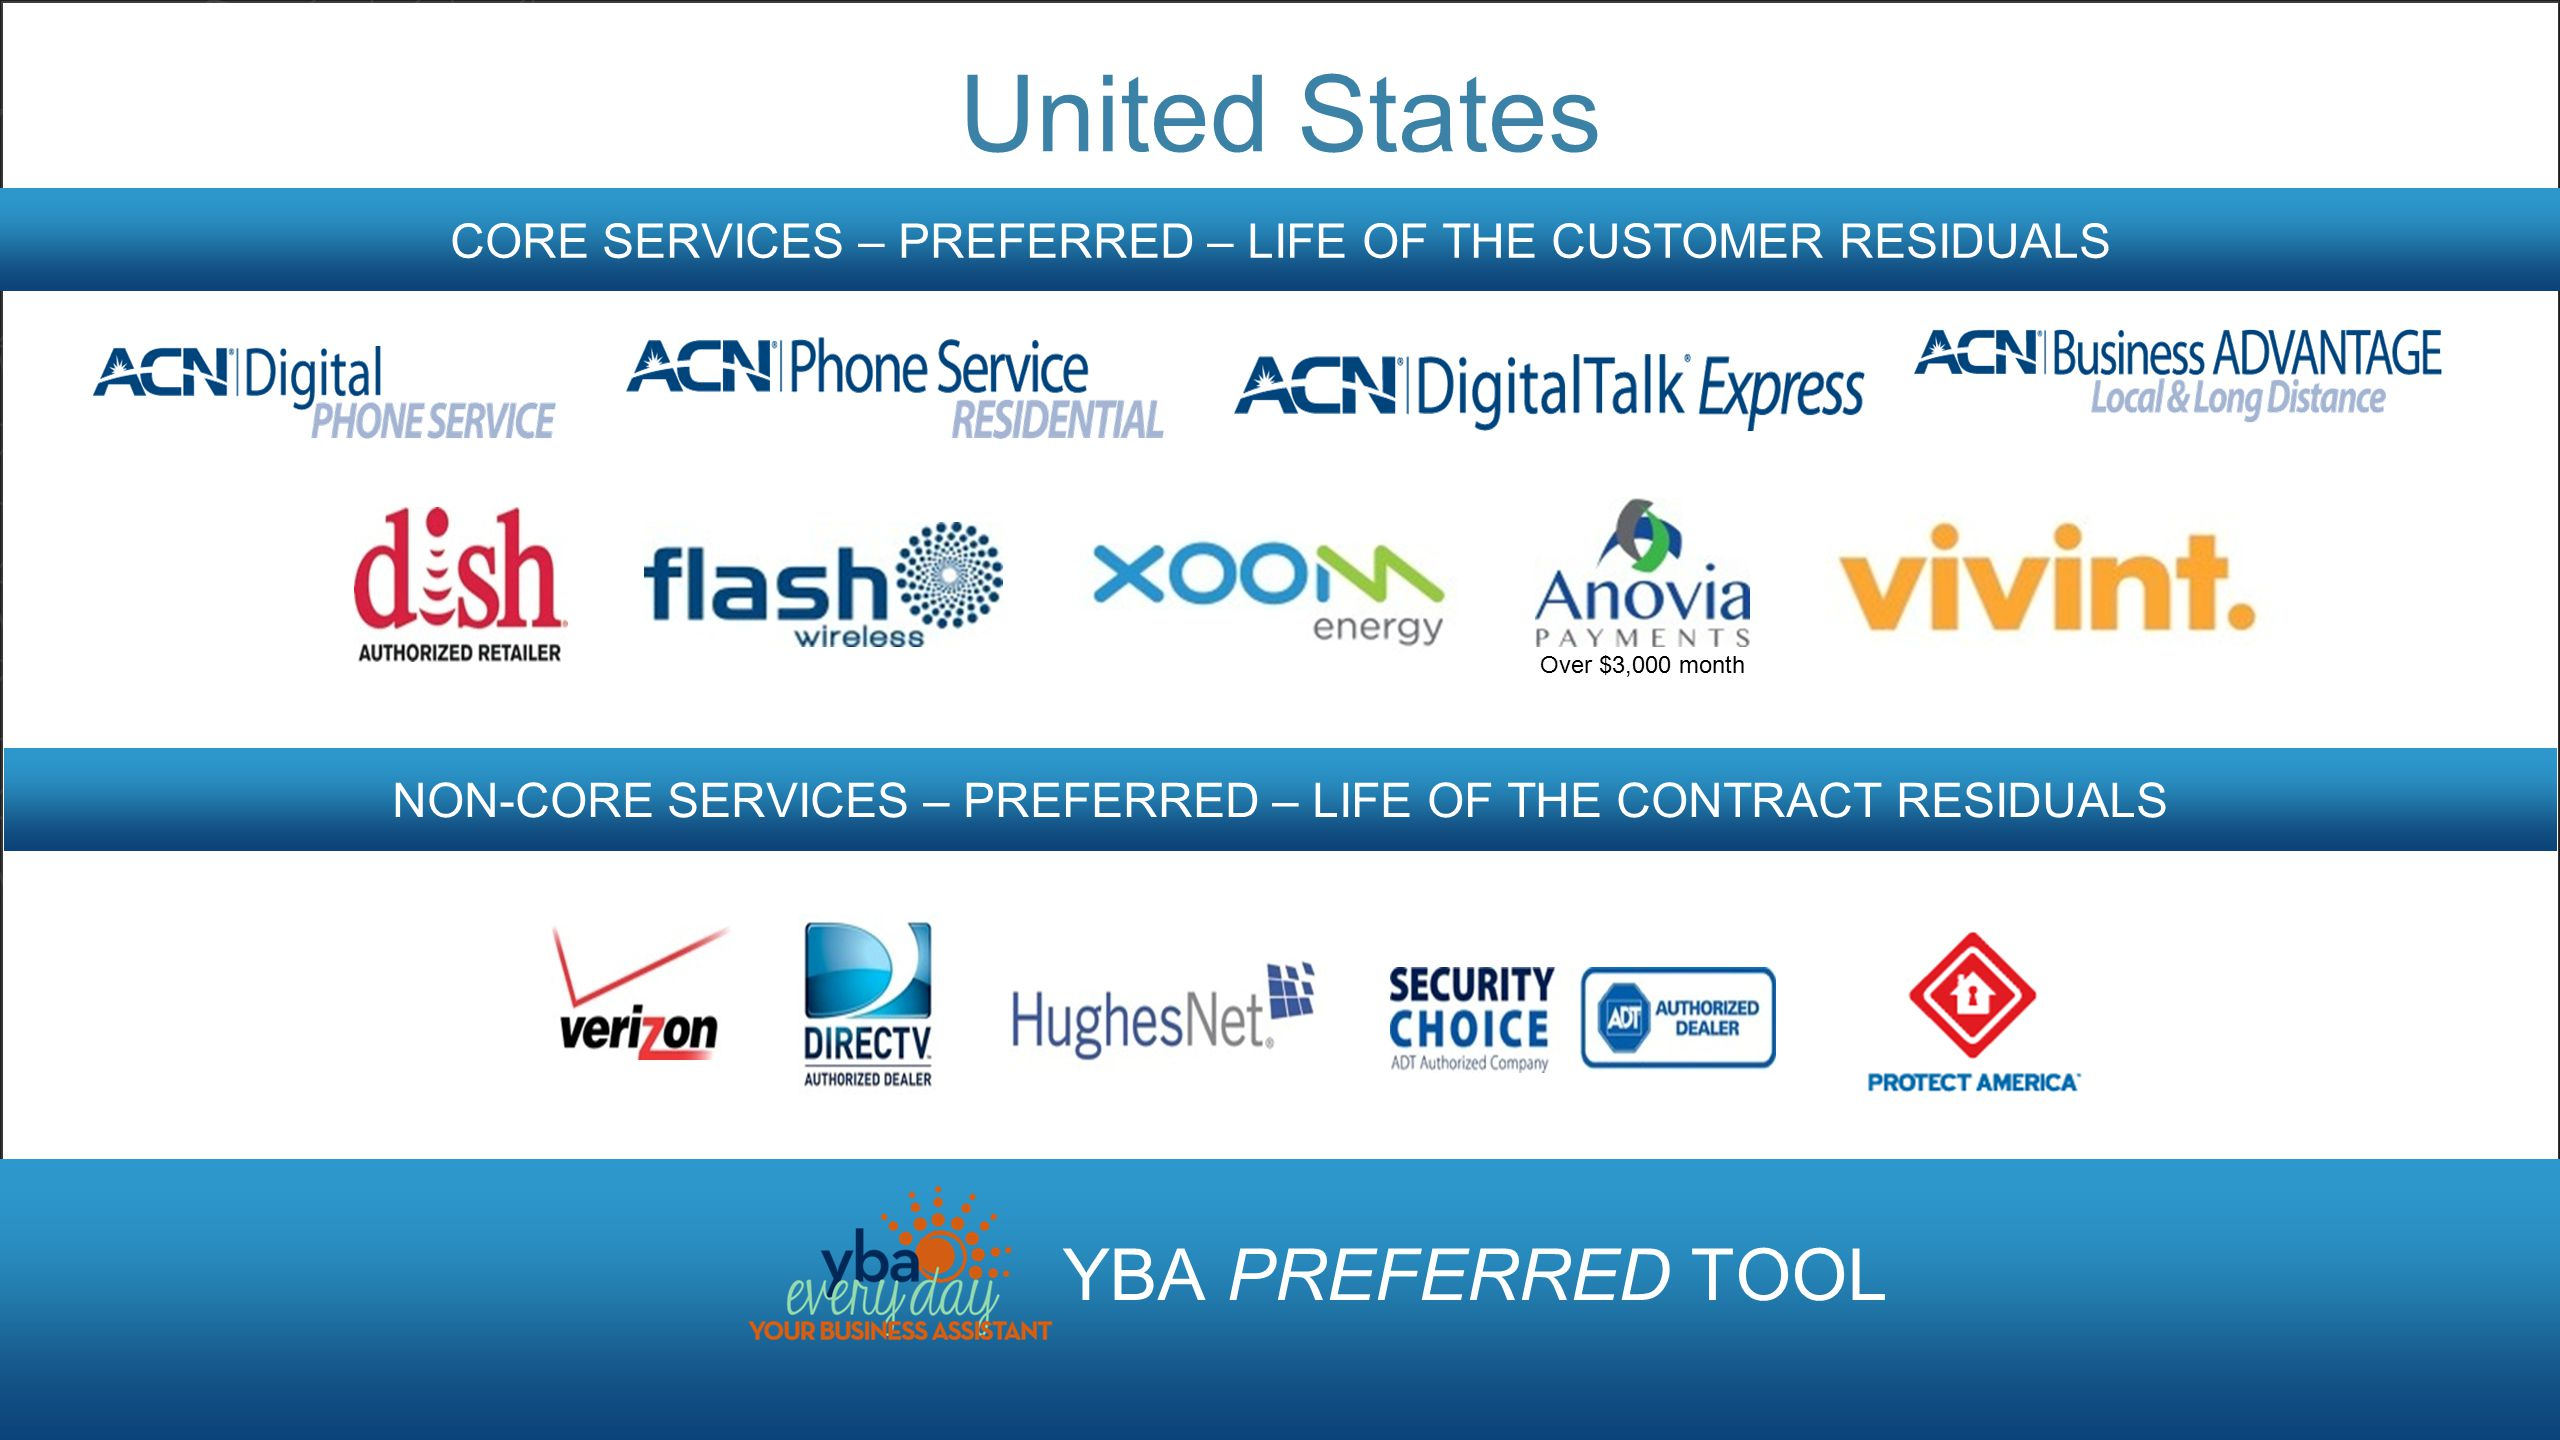 United States YBA PREFERRED TOOL